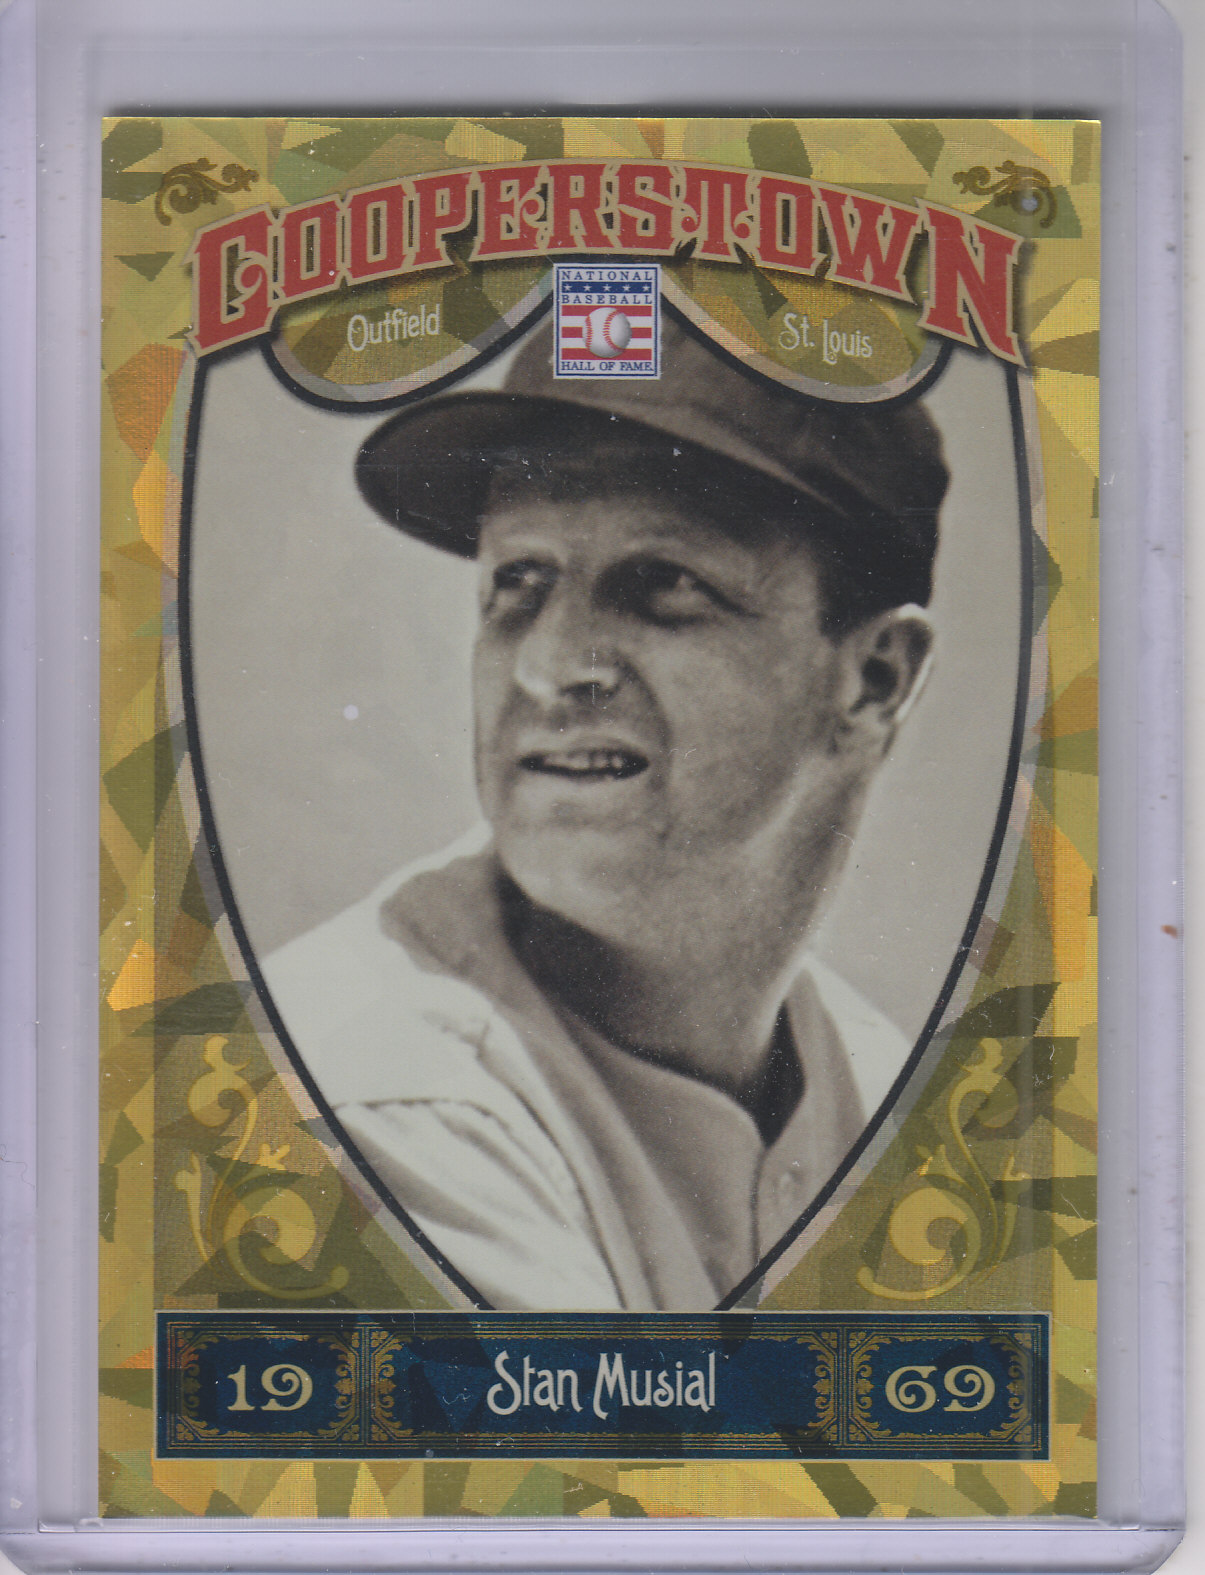 2013 Panini Cooperstown Gold Crystal #56 Stan Musial